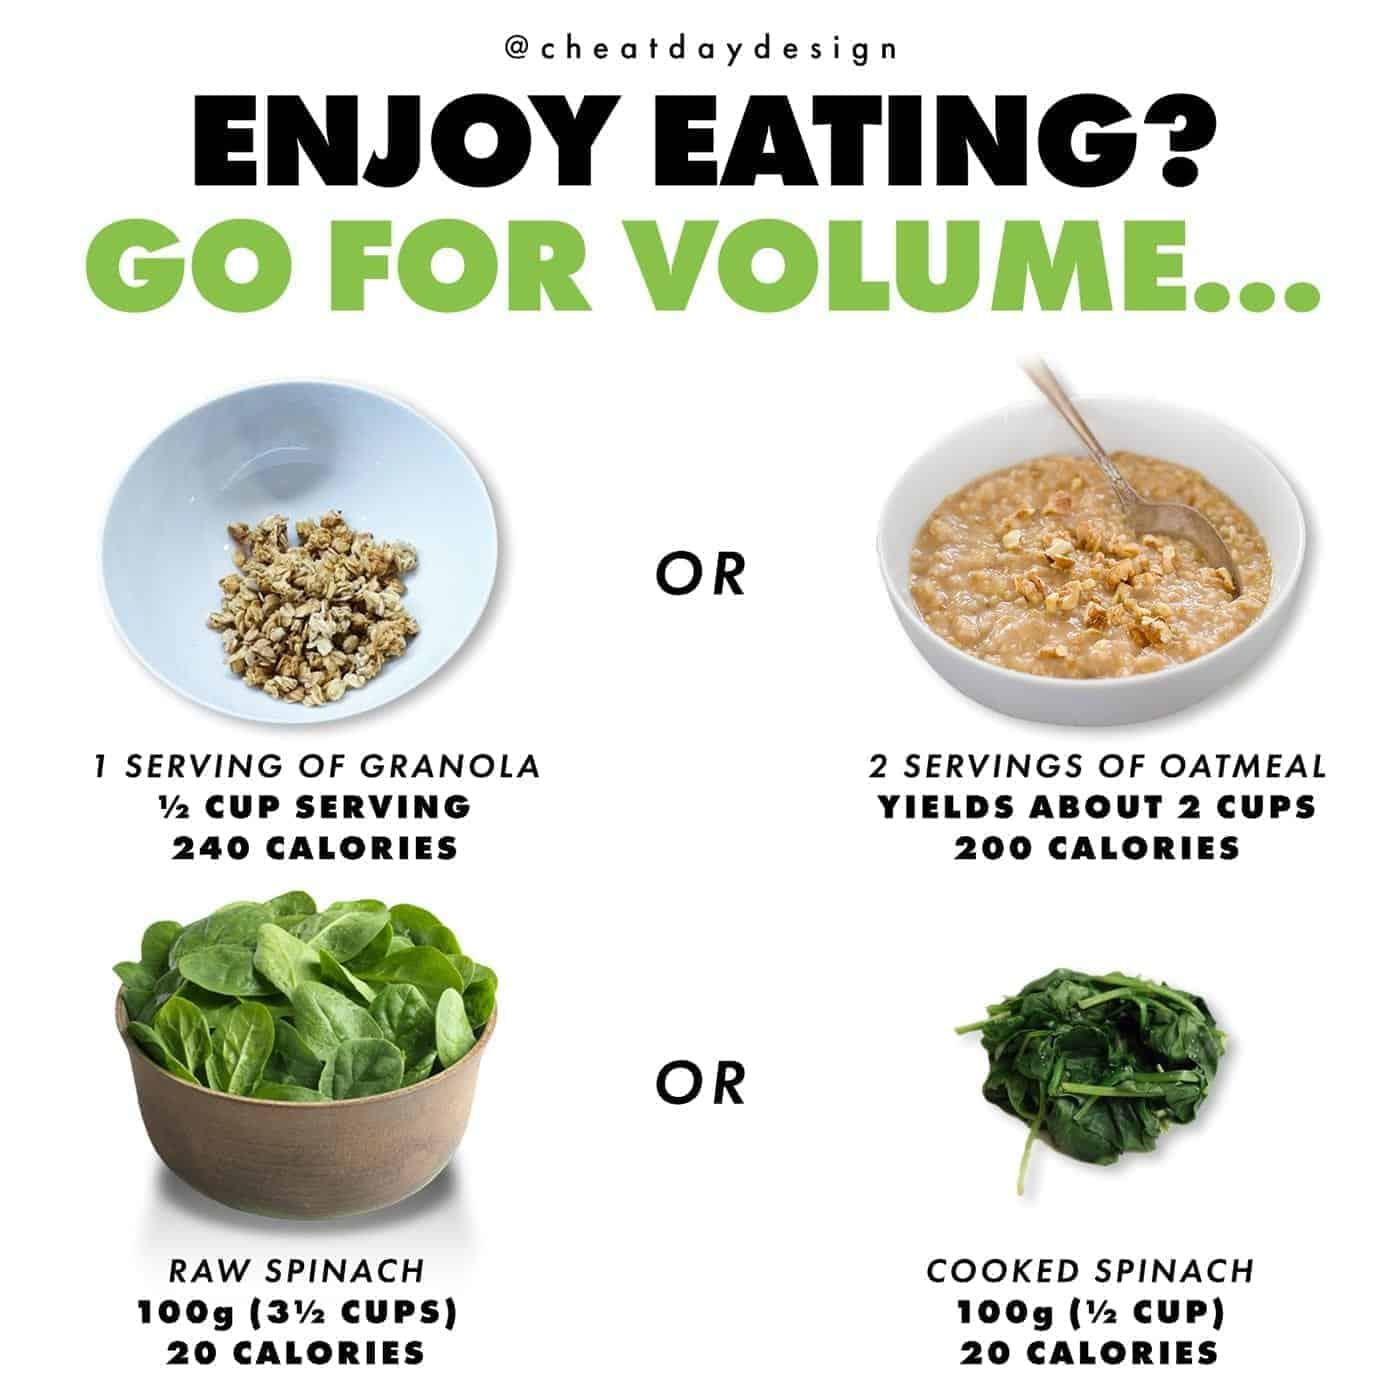 The Benefits of Volume Eating